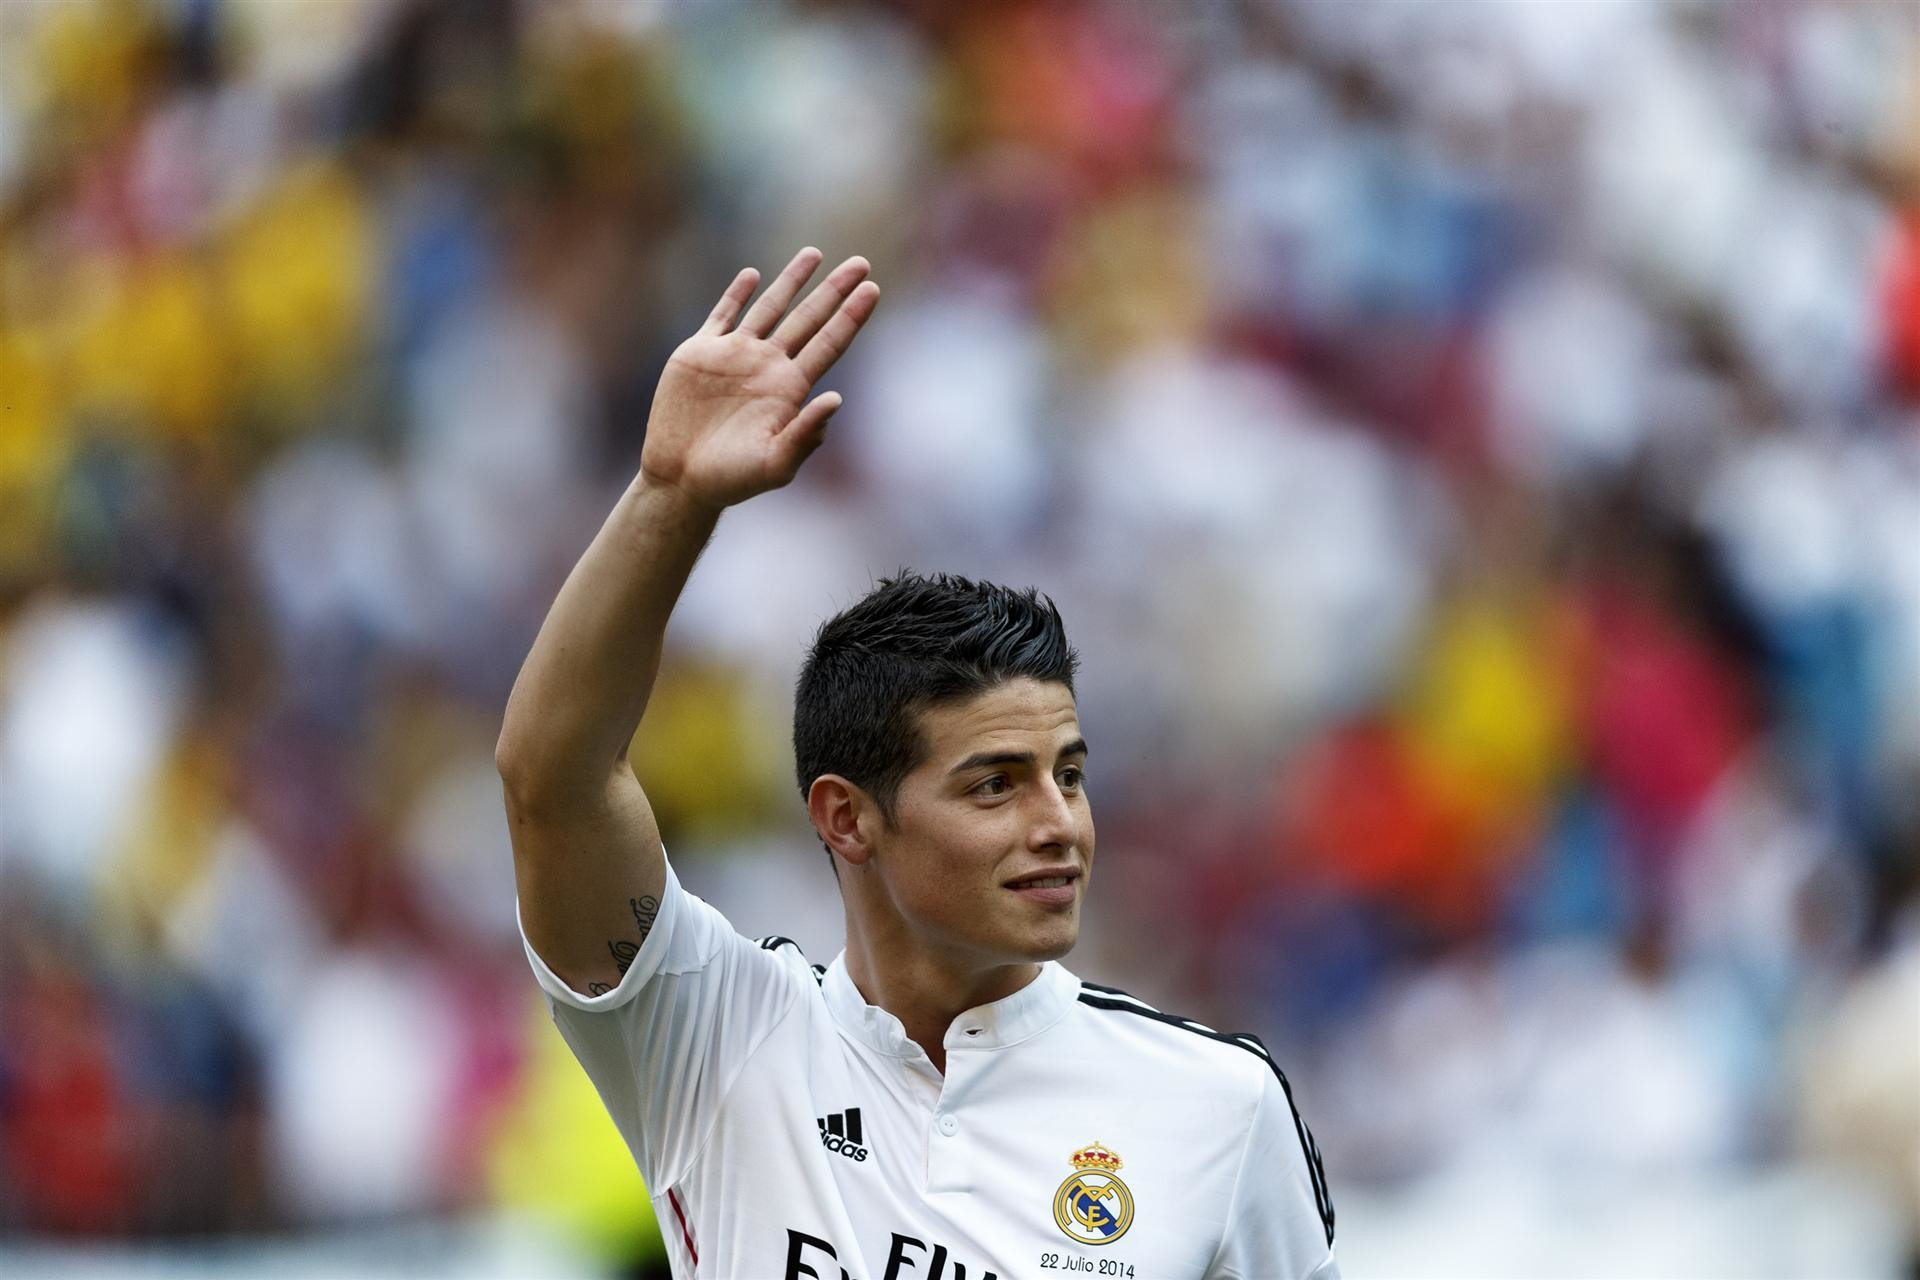 1920x1280 James rodriguez hd wallpaper with Real Madrid jersey - he plays as playmaker